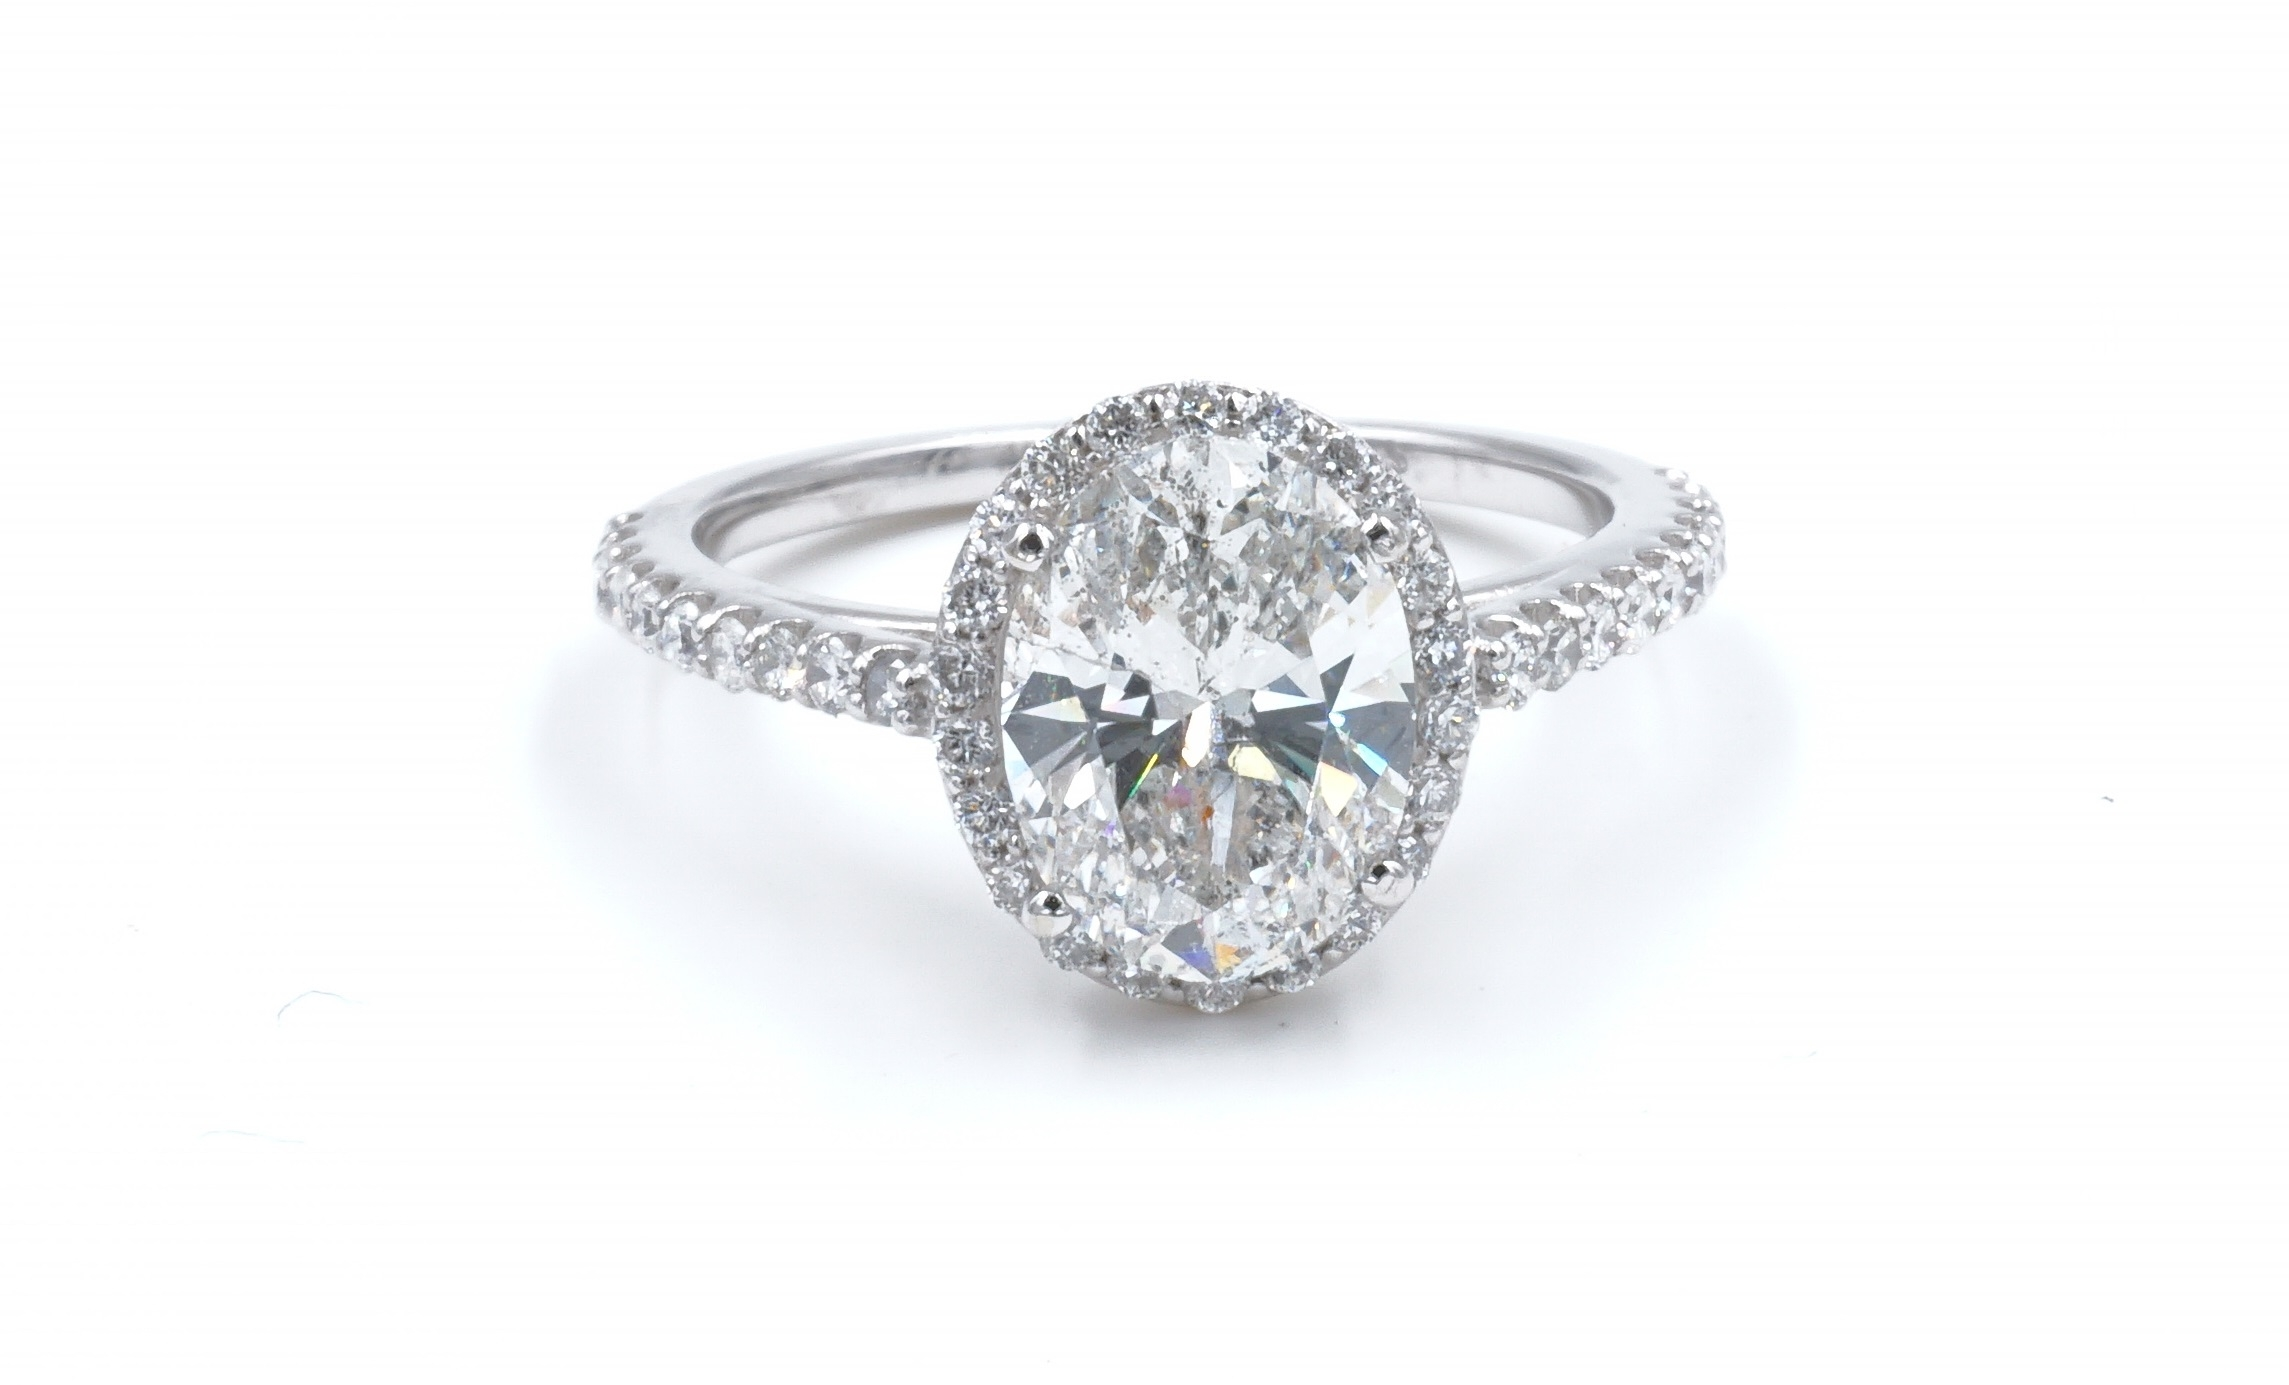 Halo Style Oval Cut Diamond Engagement Ring